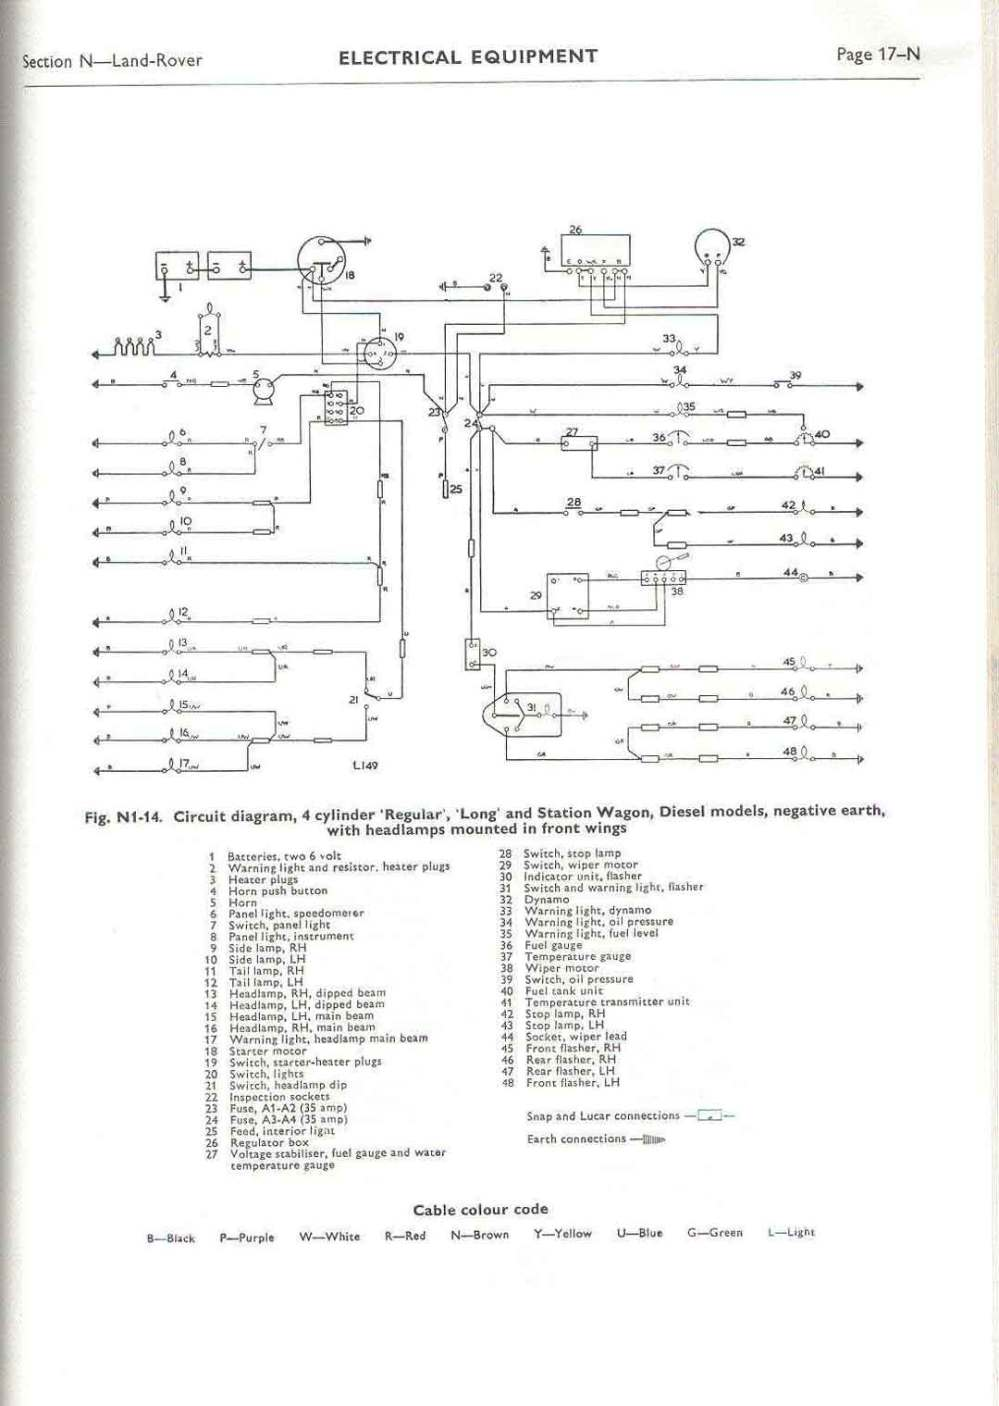 medium resolution of land rover series iia wiring diagram wiring library rh 90 skriptoase de land rover series 1 wiring diagram land rover series ii wiring diagram